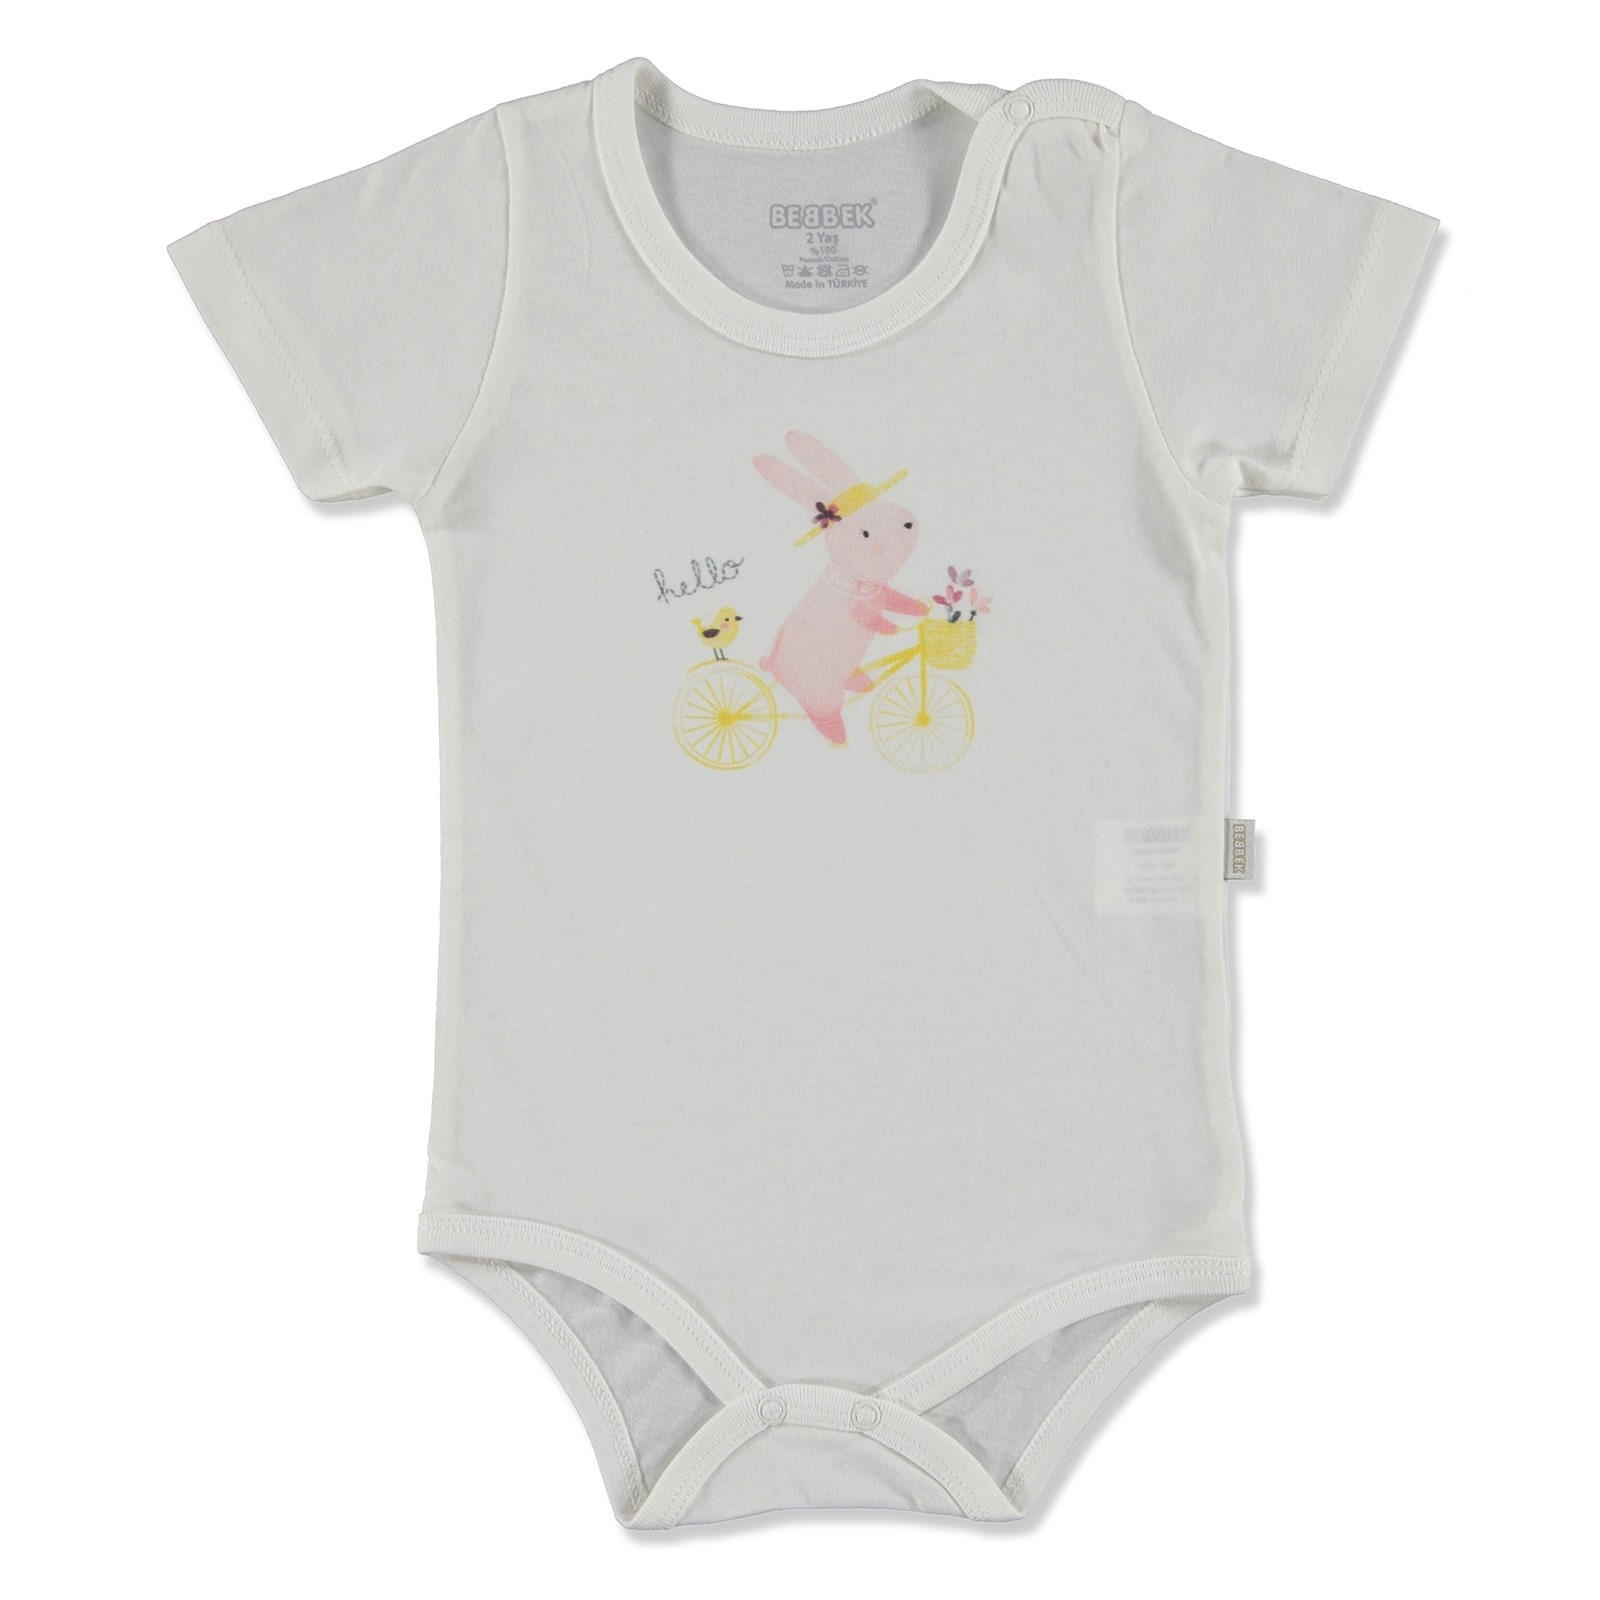 Ebebek Bebbek Summer Baby Girl Hello Supreme Crew-Neck Bodysuit